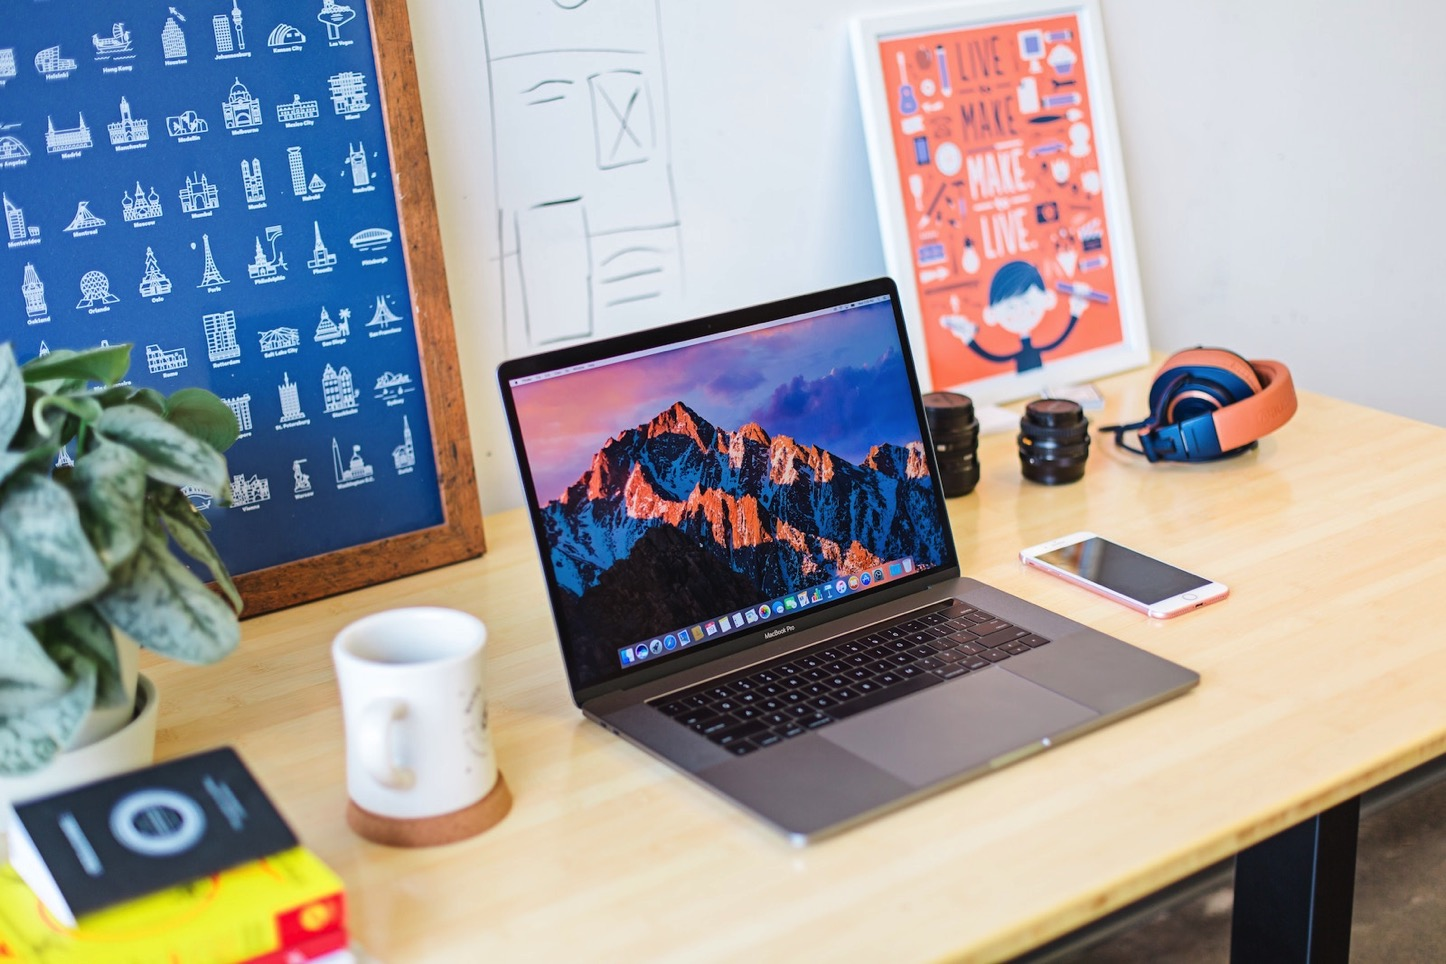 Mia baker 322594 macbook pro clean room and desk unsplash